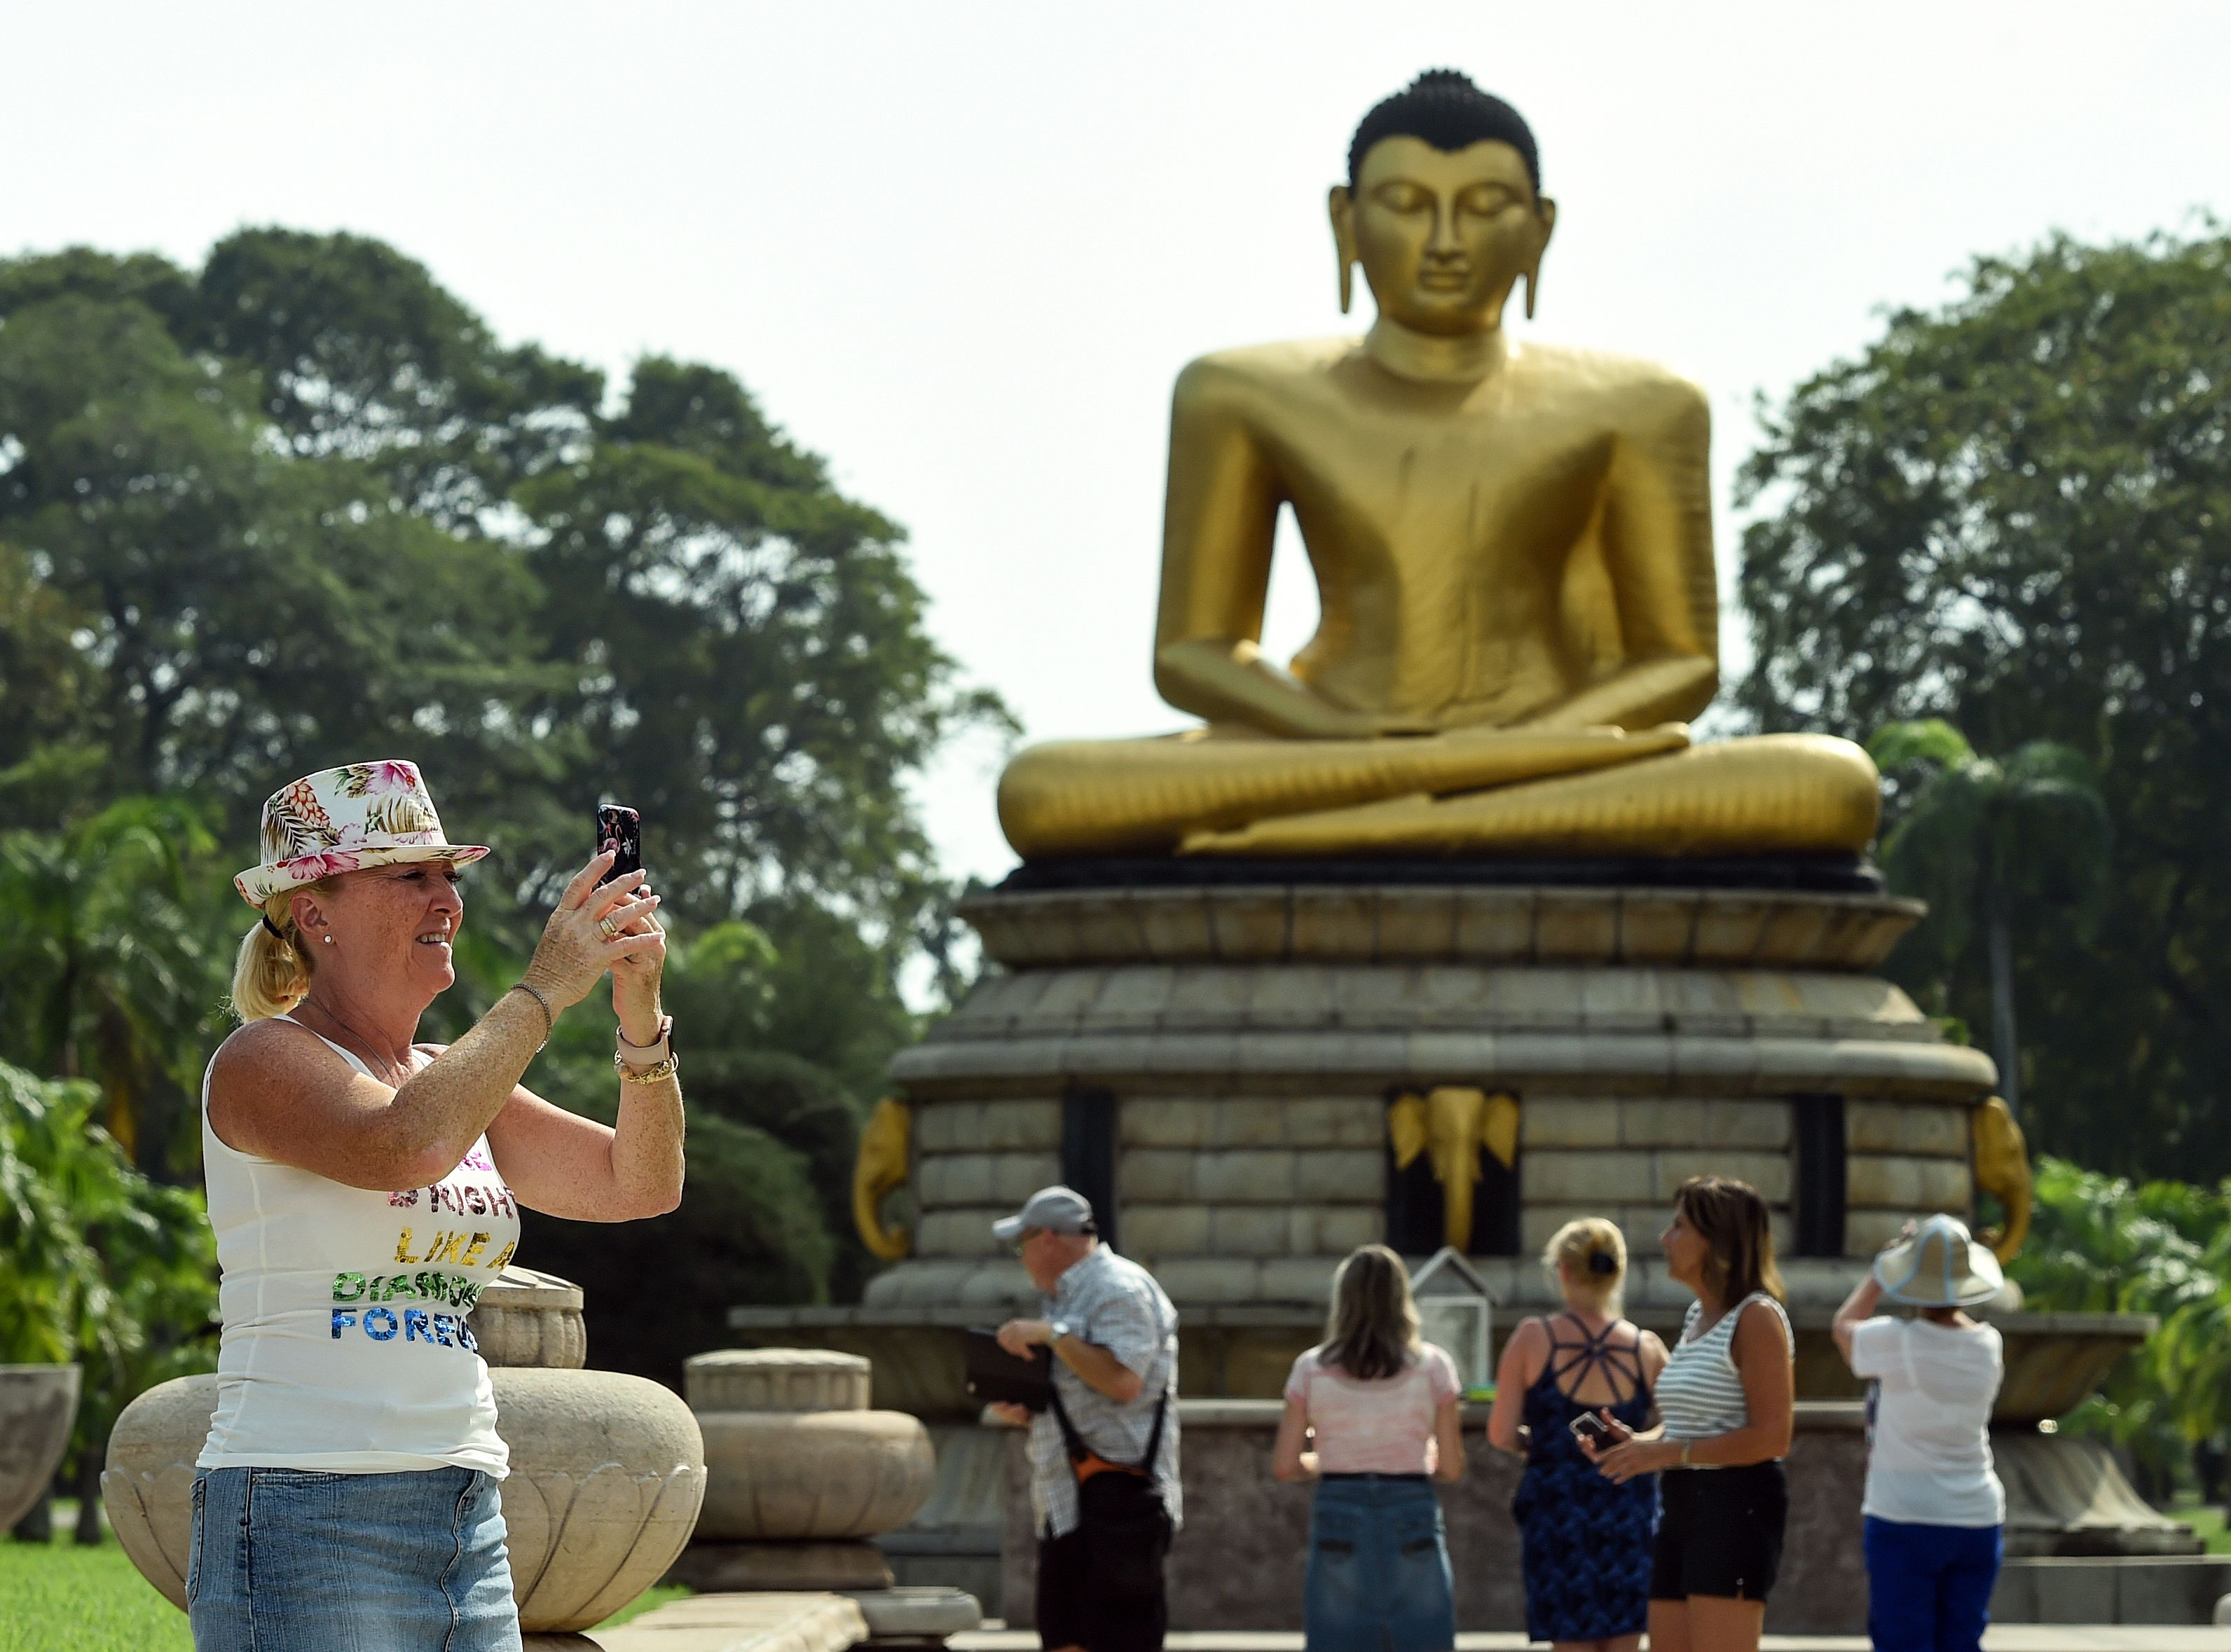 Earlier this year Colombo was named the must-photograph travel destination of 2019, according to a study.